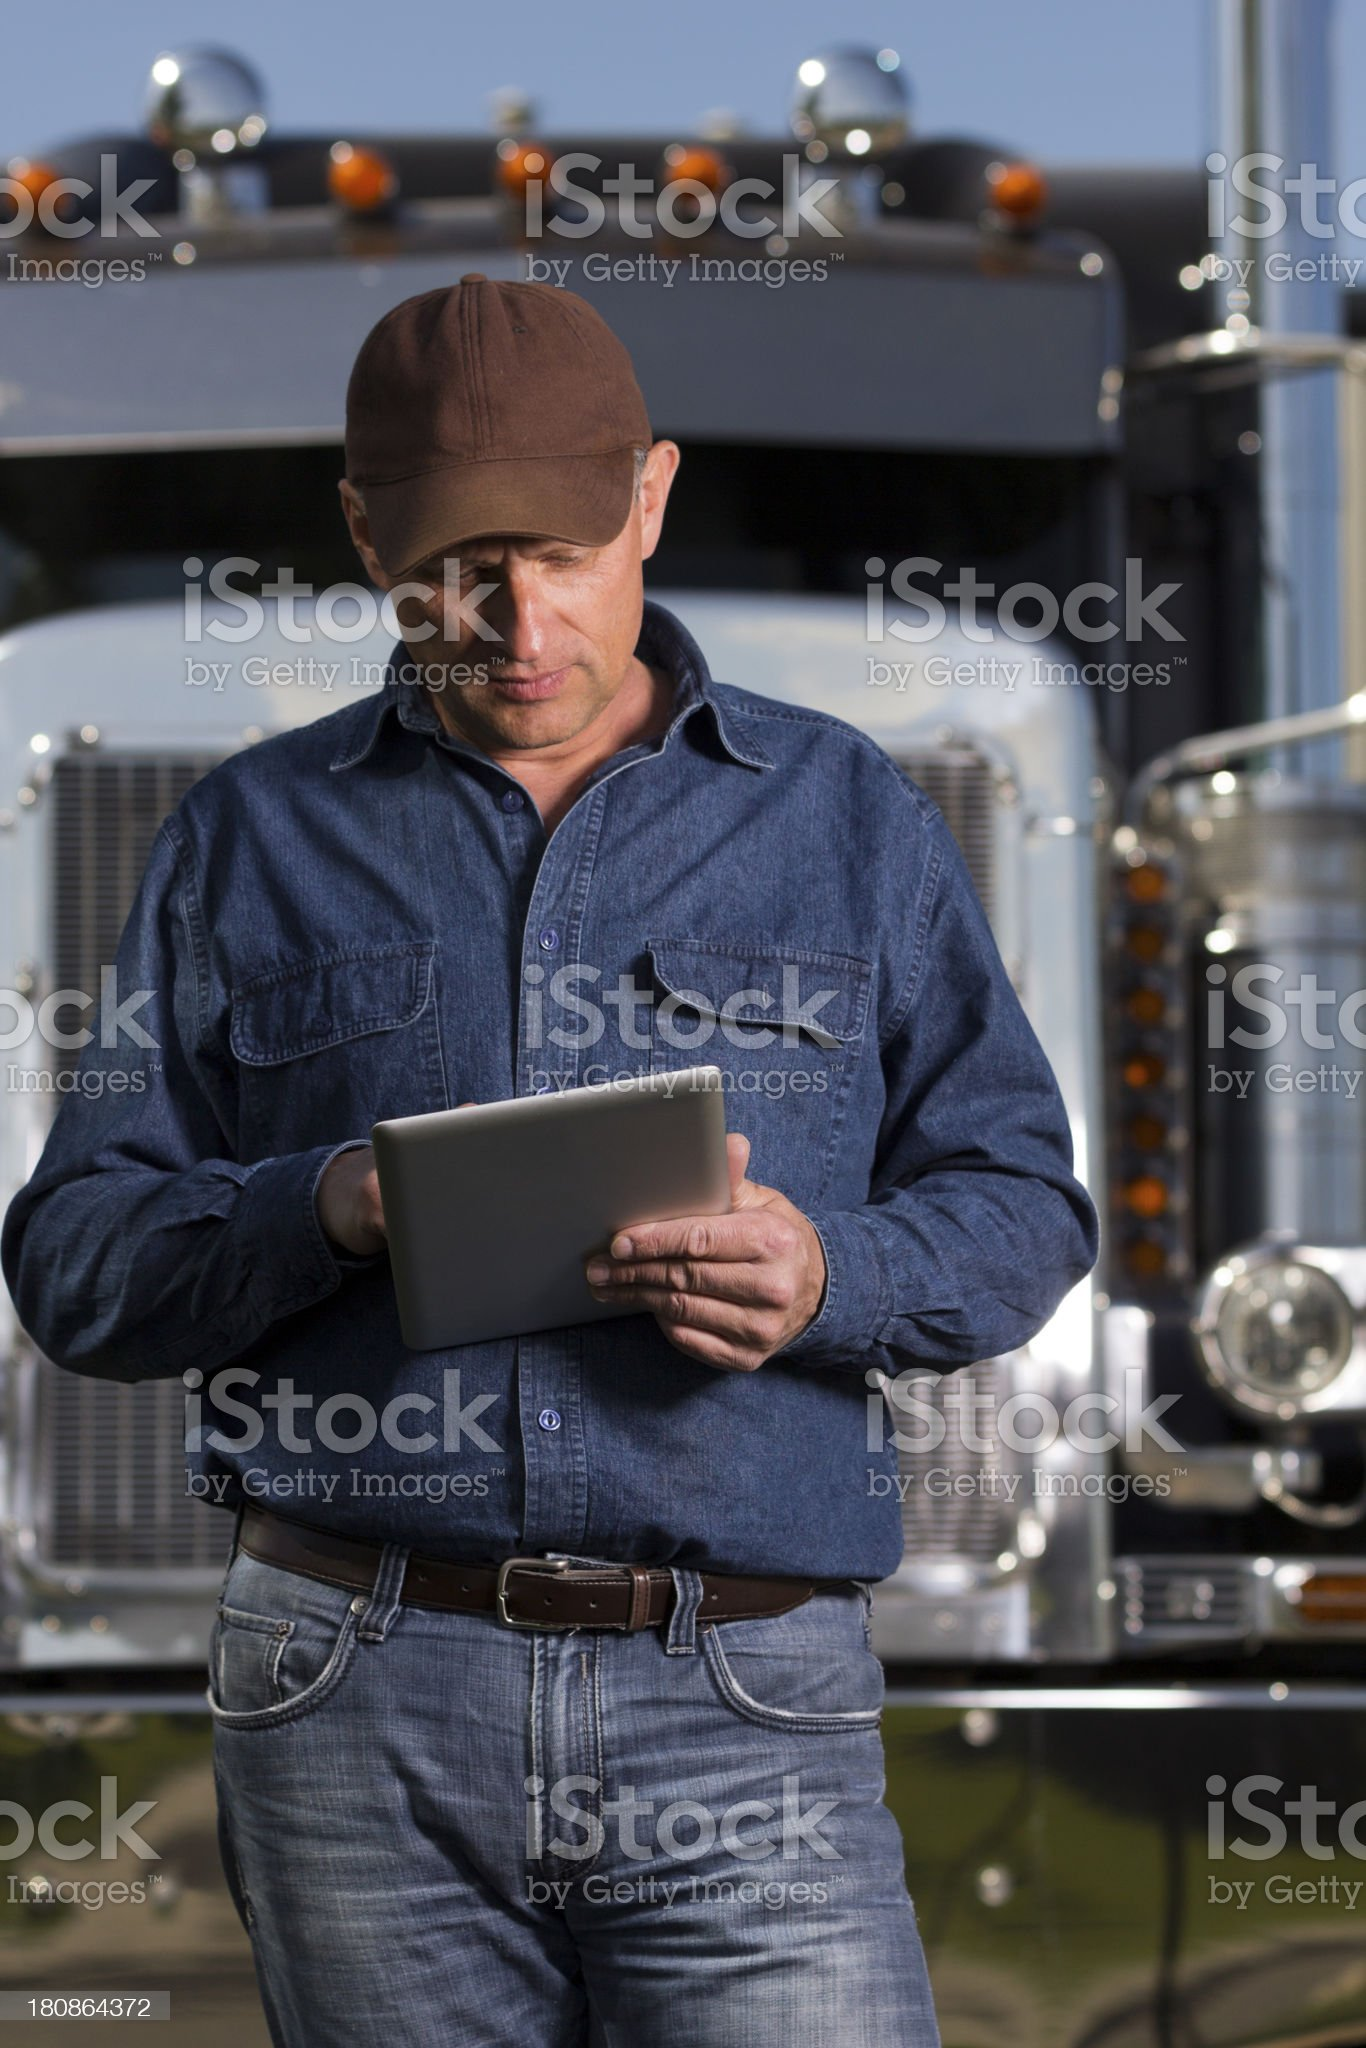 Trucker and Tablet Computer royalty-free stock photo